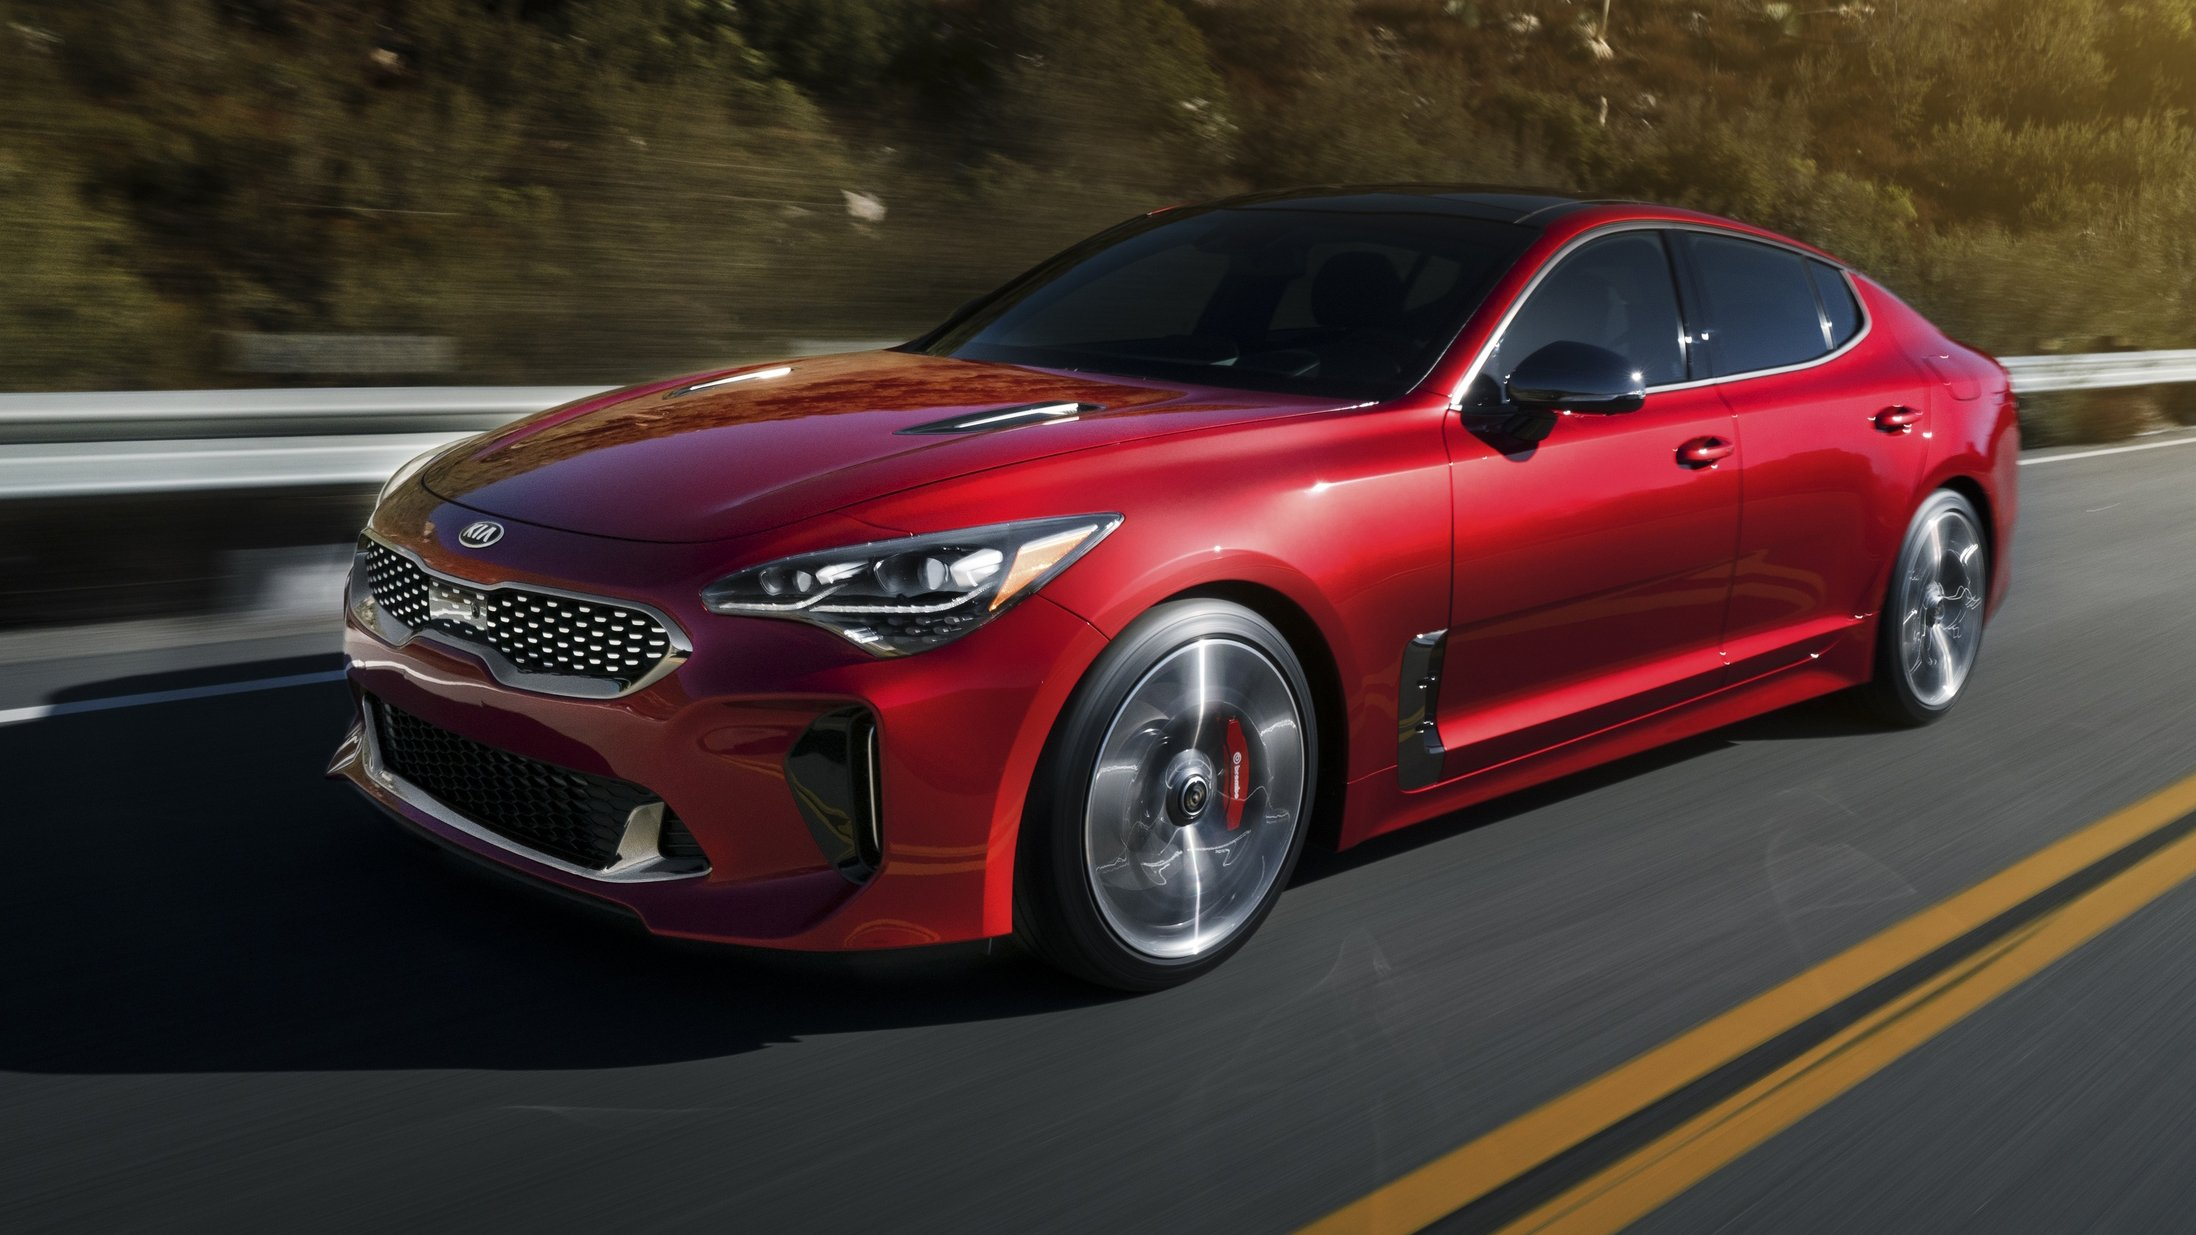 2018 kia stinger revealed detroit debut for 272kw rear. Black Bedroom Furniture Sets. Home Design Ideas